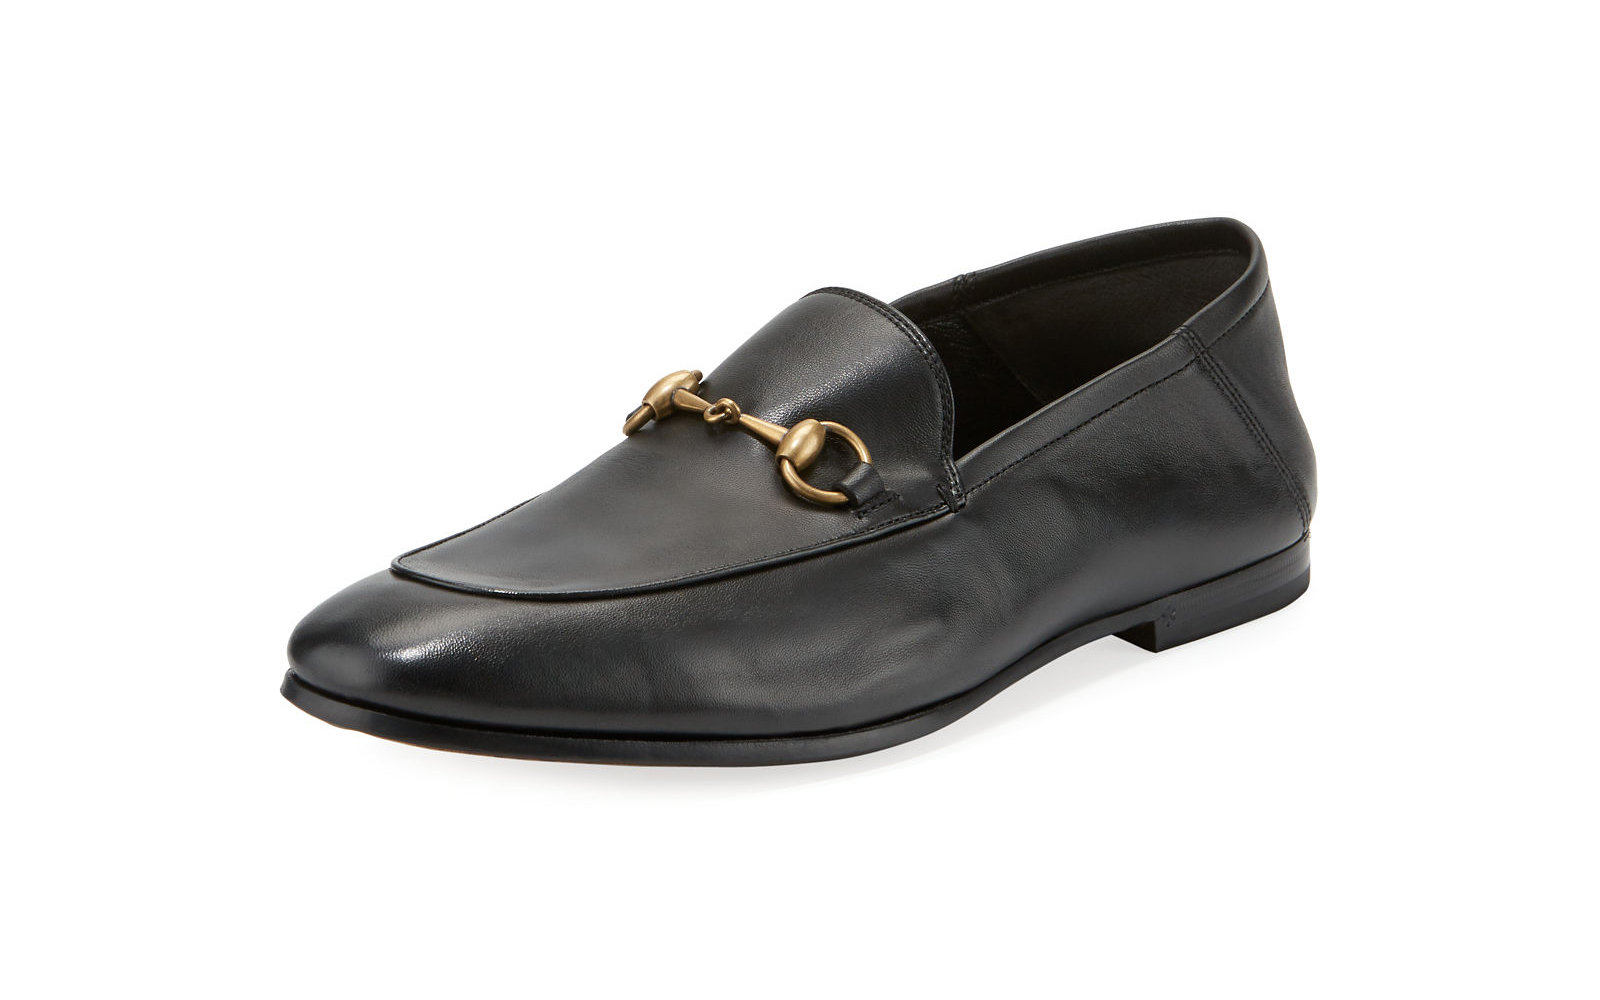 Neiman Marcus Gucci Soft Leather Bit Strap Loafer